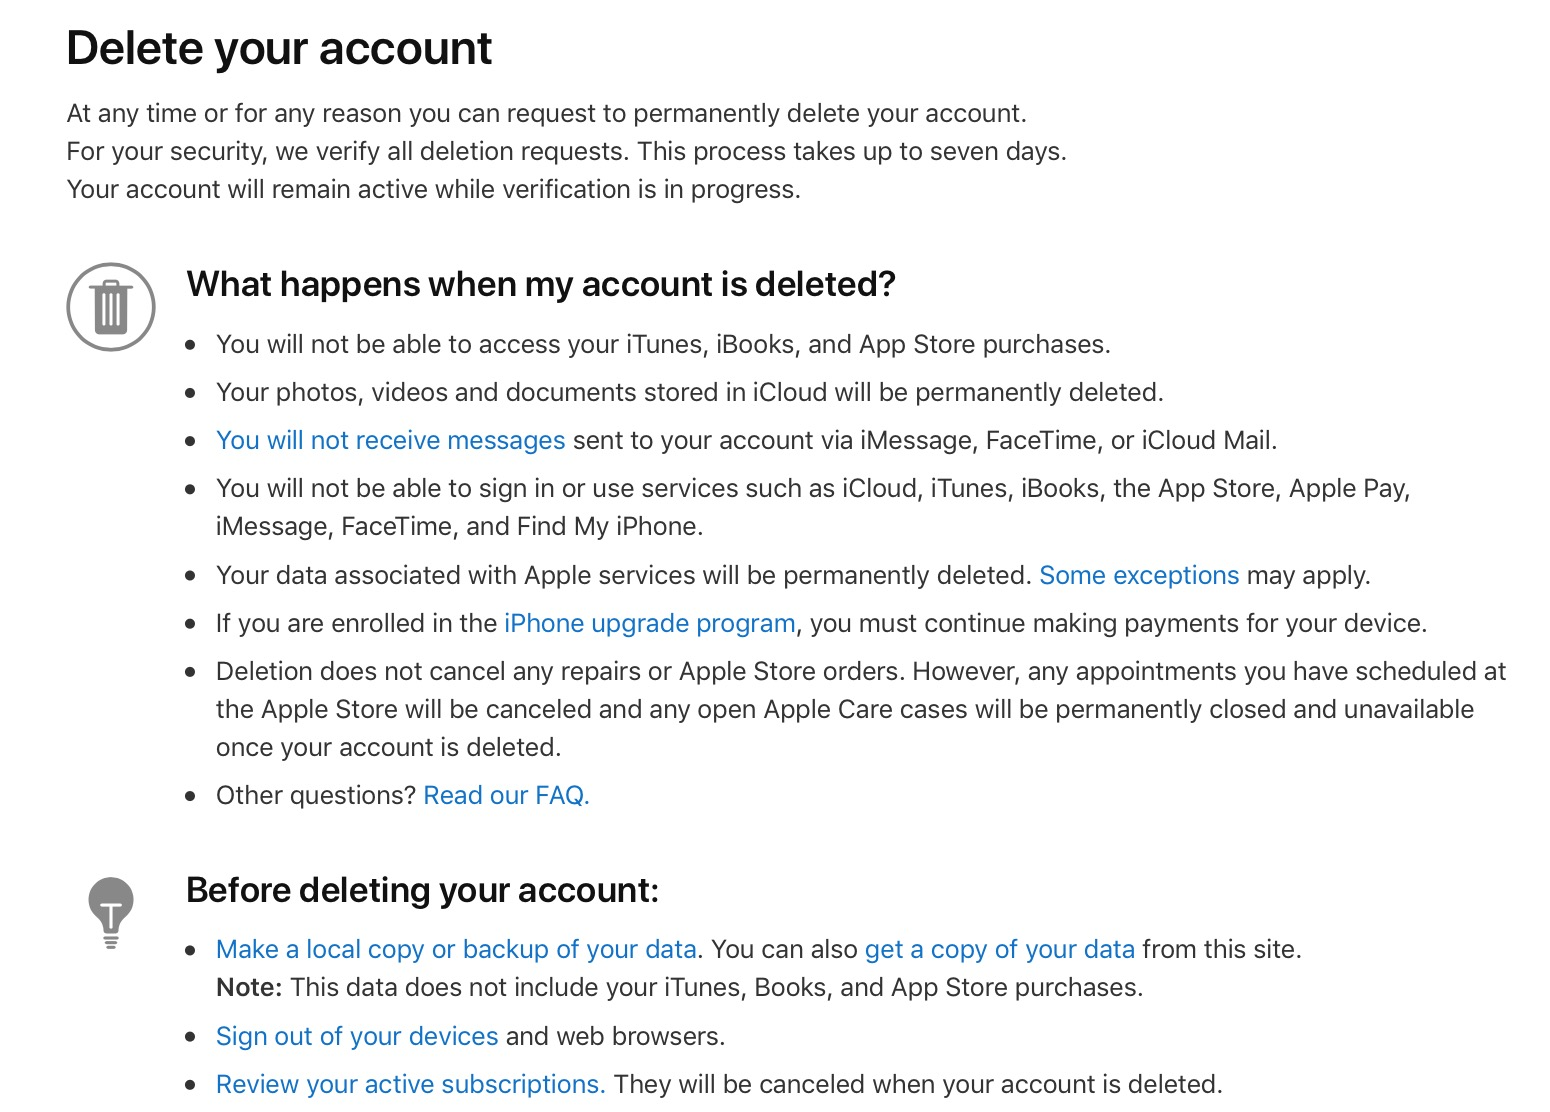 """Delete your account"" Screen"